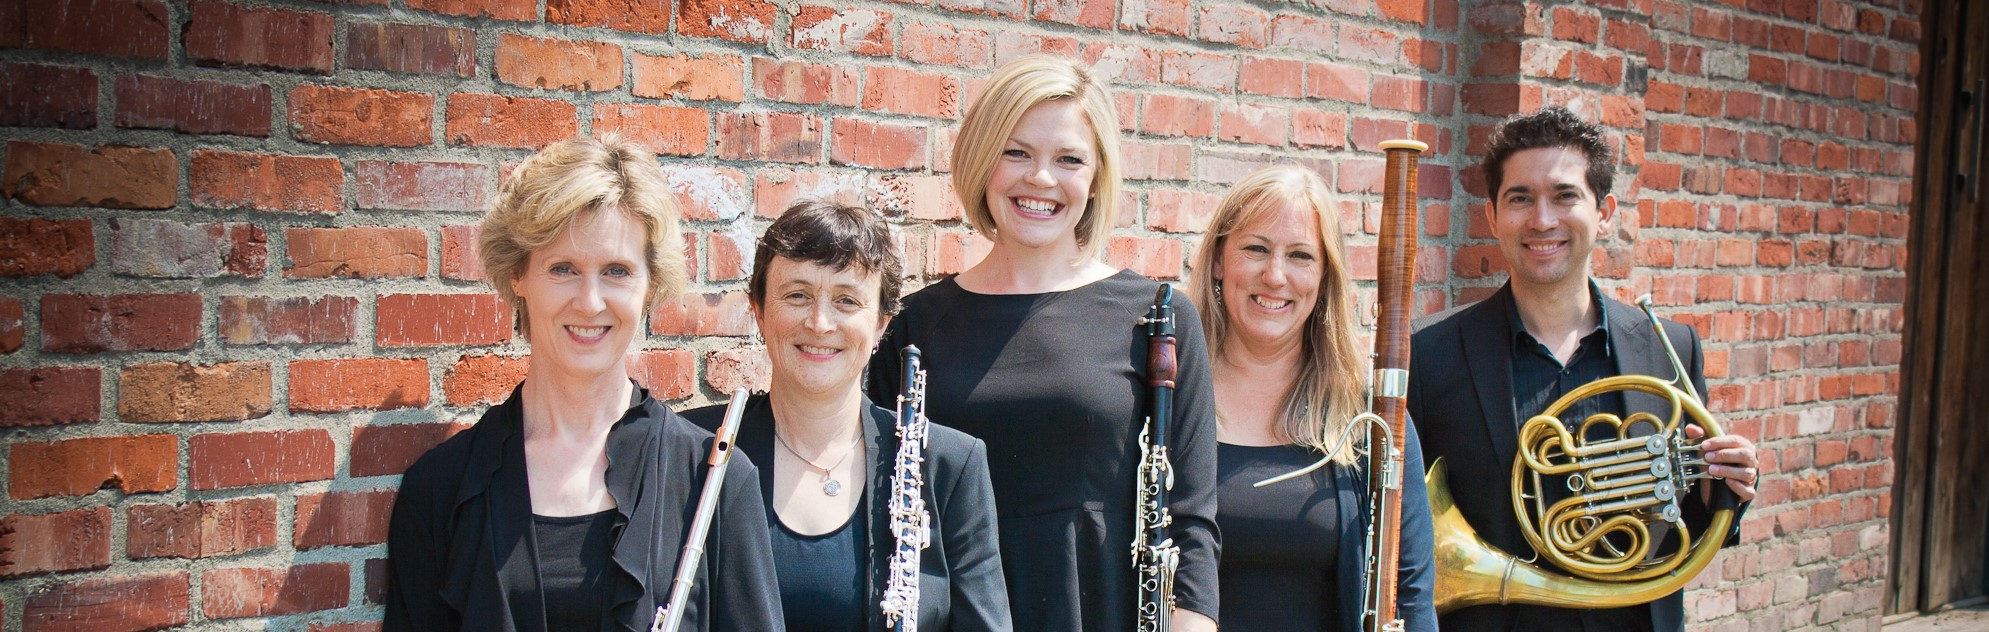 Fifth Inversion ensemble members standing together in front of a brick wall, holding instruments and smiling